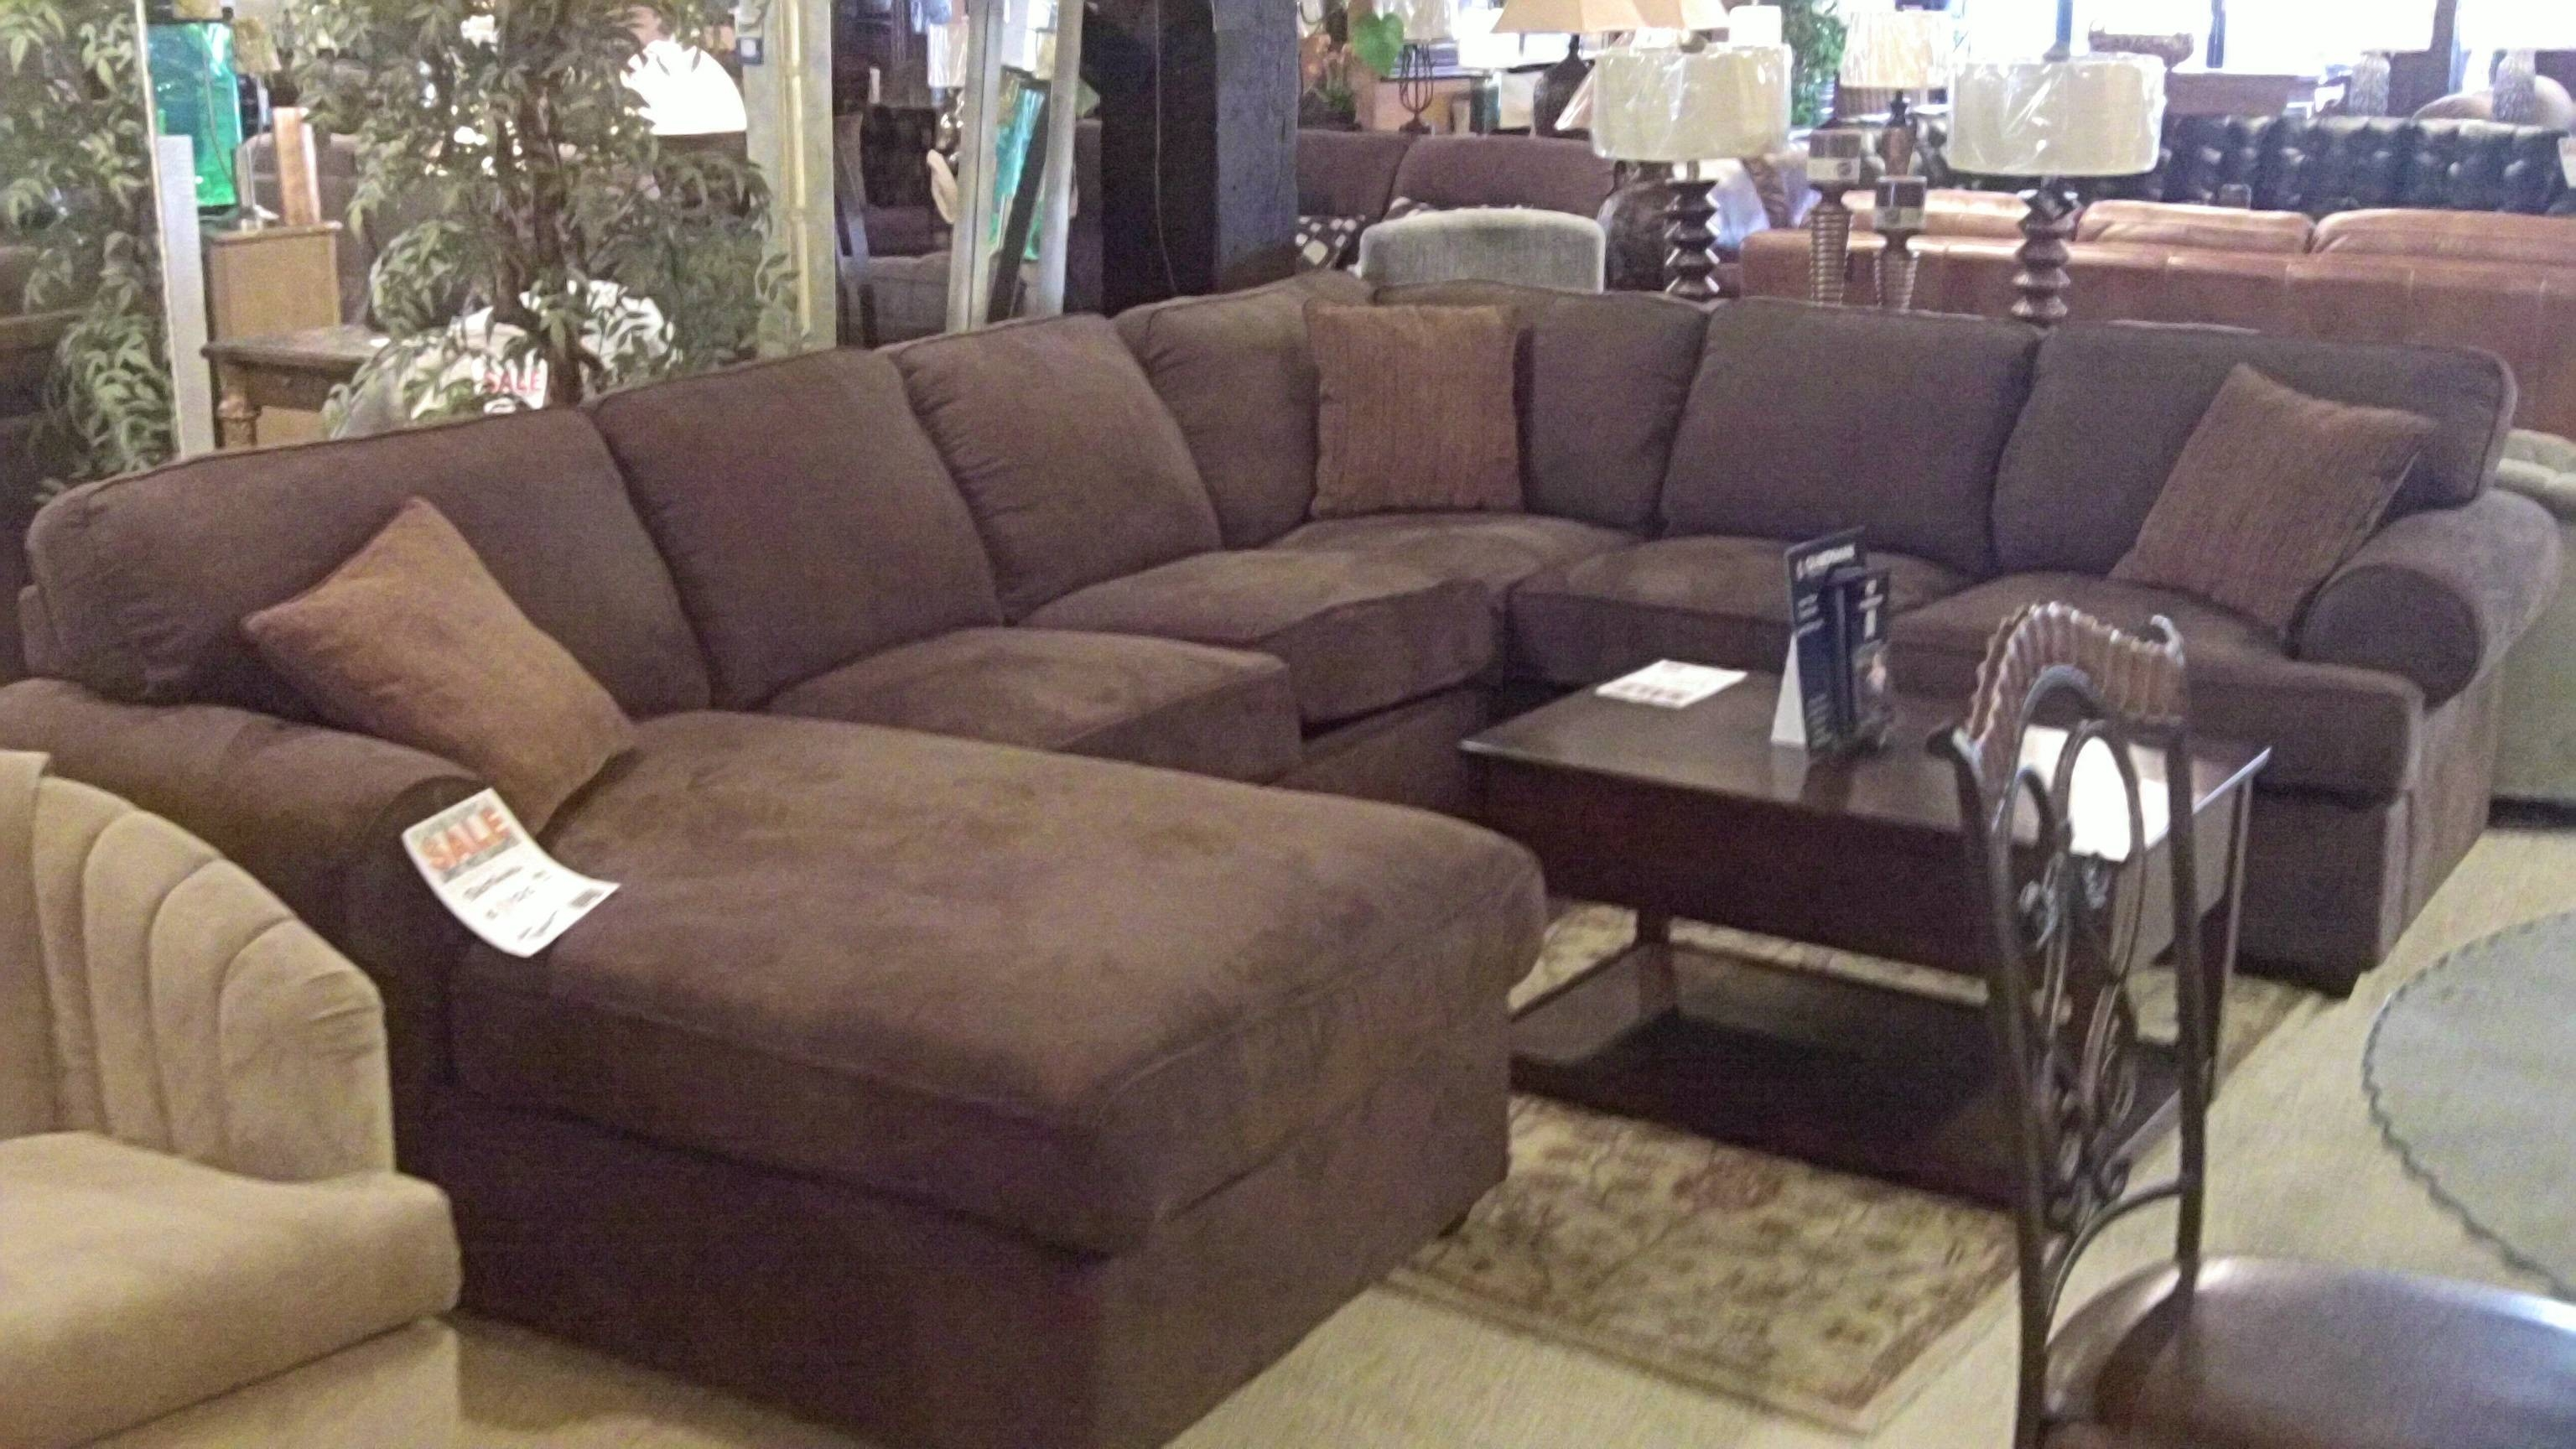 Furniture: Nice Extra Large Sectional Sofa For Large Living Room with regard to Large Comfortable Sectional Sofas (Image 15 of 25)